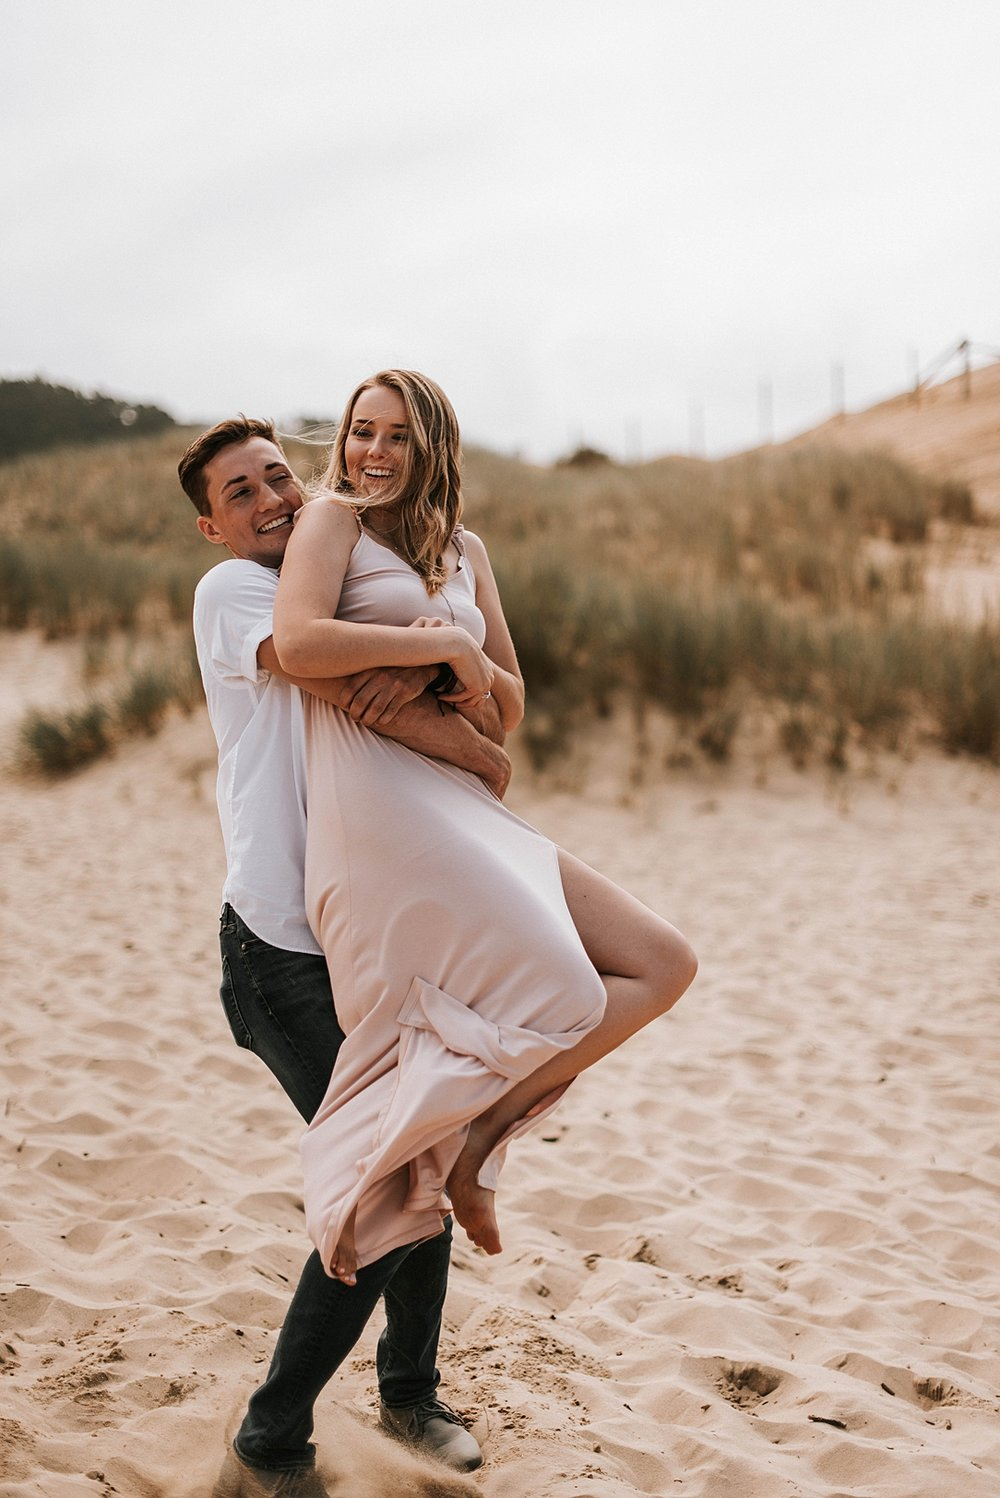 nbp sweet beach couple session_0021.jpg